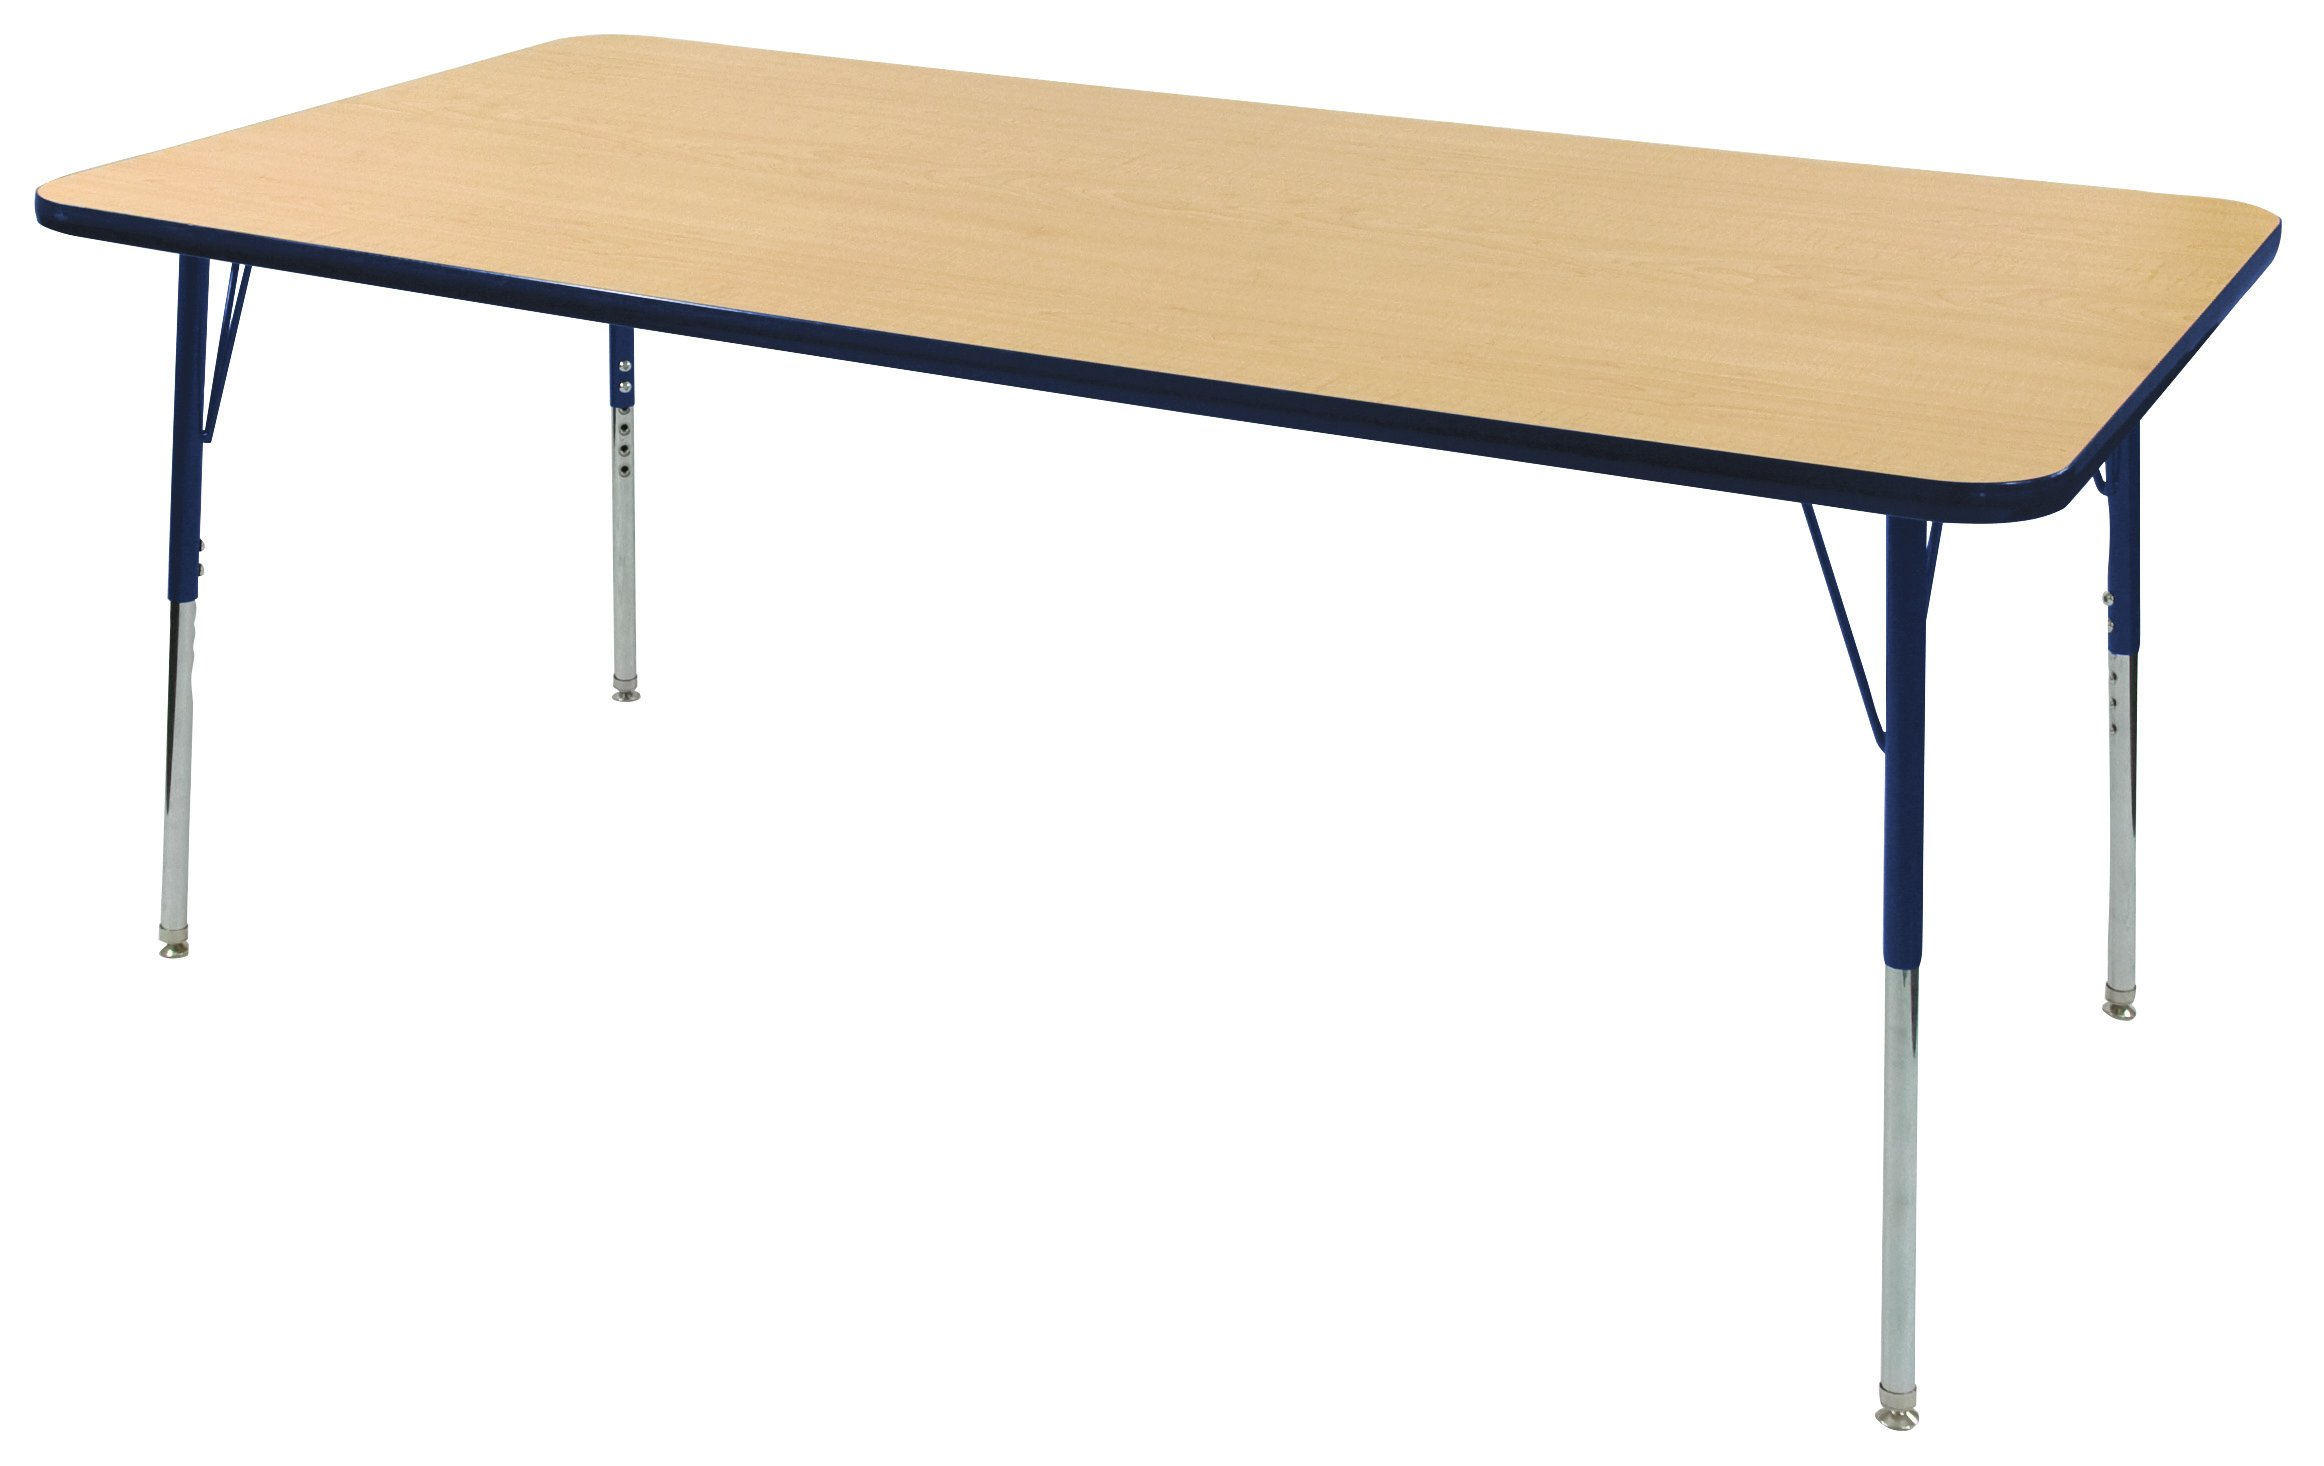 ECR4Kids T-Mold 36'' x 72'' Rectangular Activity School Table, Toddler Legs w/ Swivel Glides, Adjustable Height 15-23 inch (Maple/Navy) by ECR4Kids